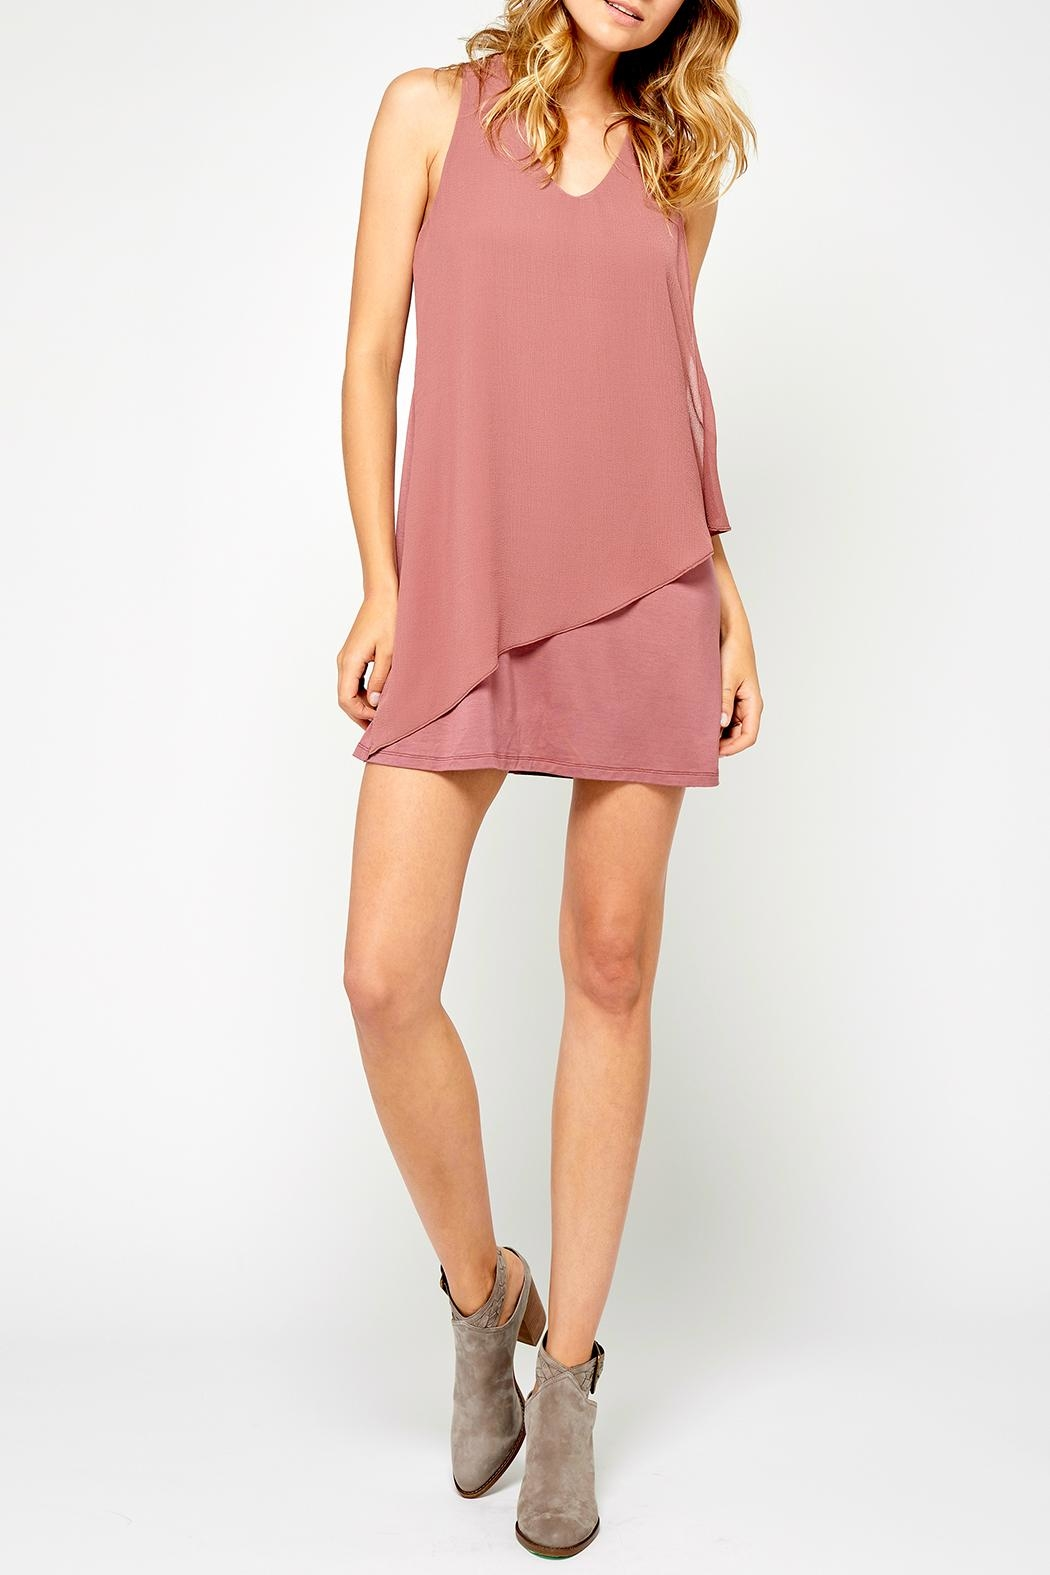 Gentle Fawn Brianne Dress - Main Image